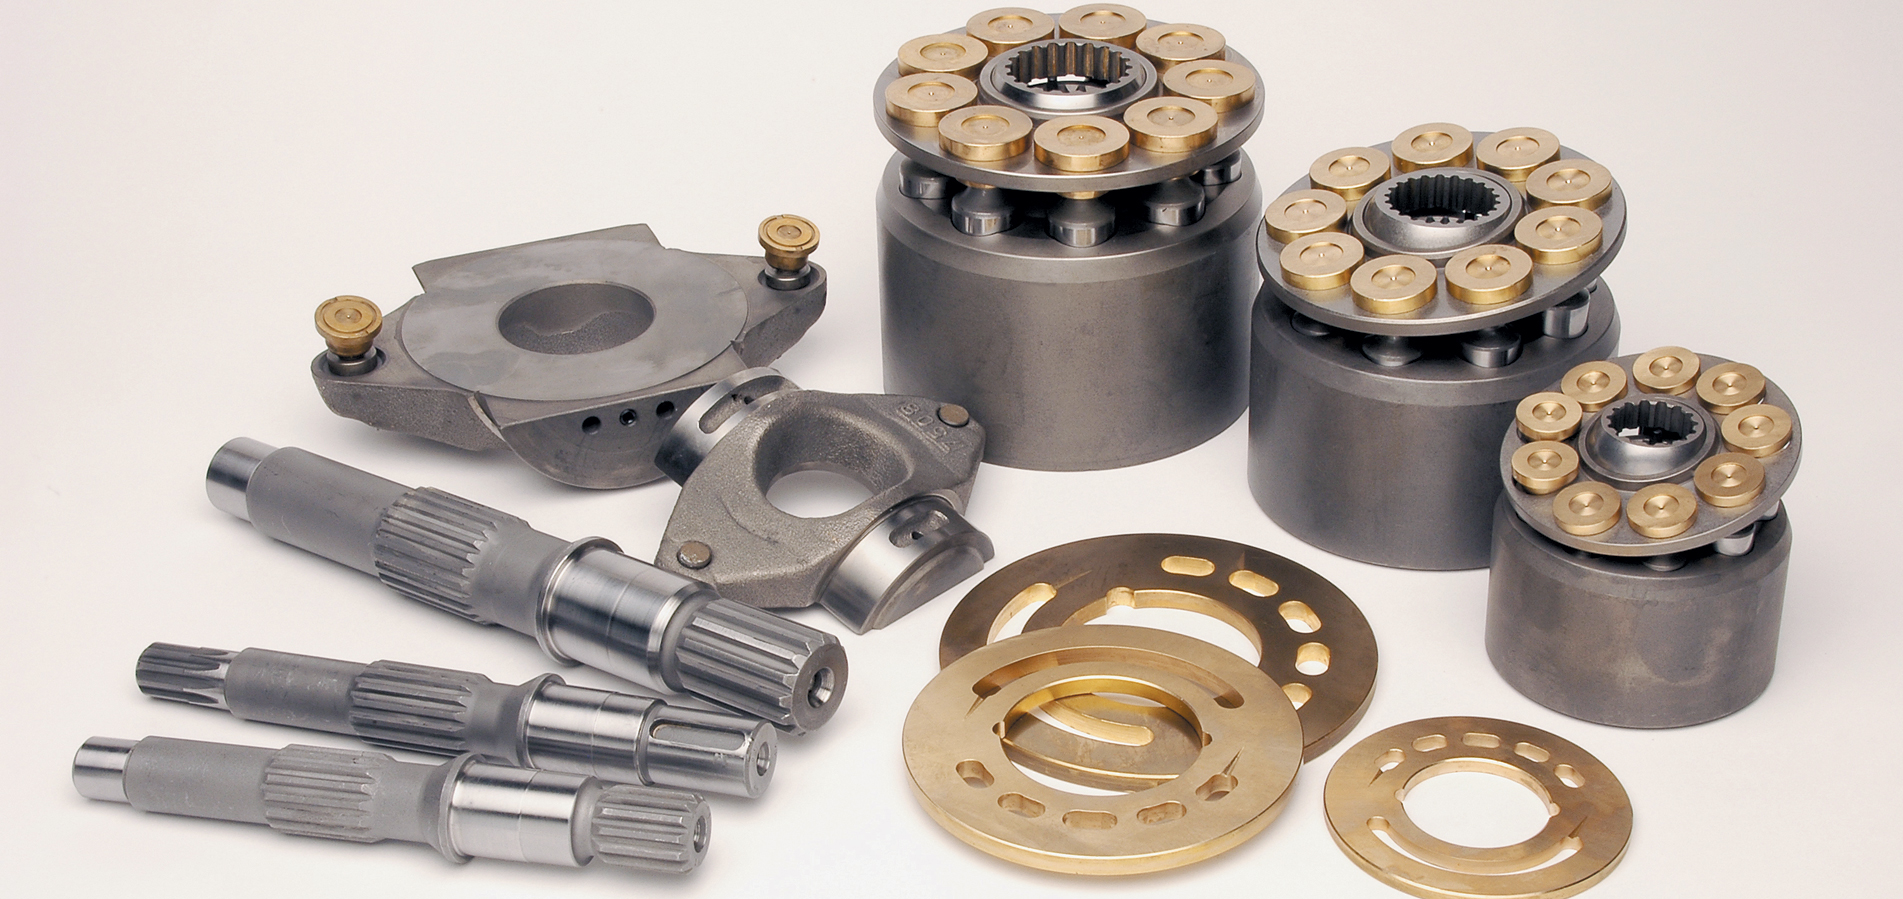 valves and components